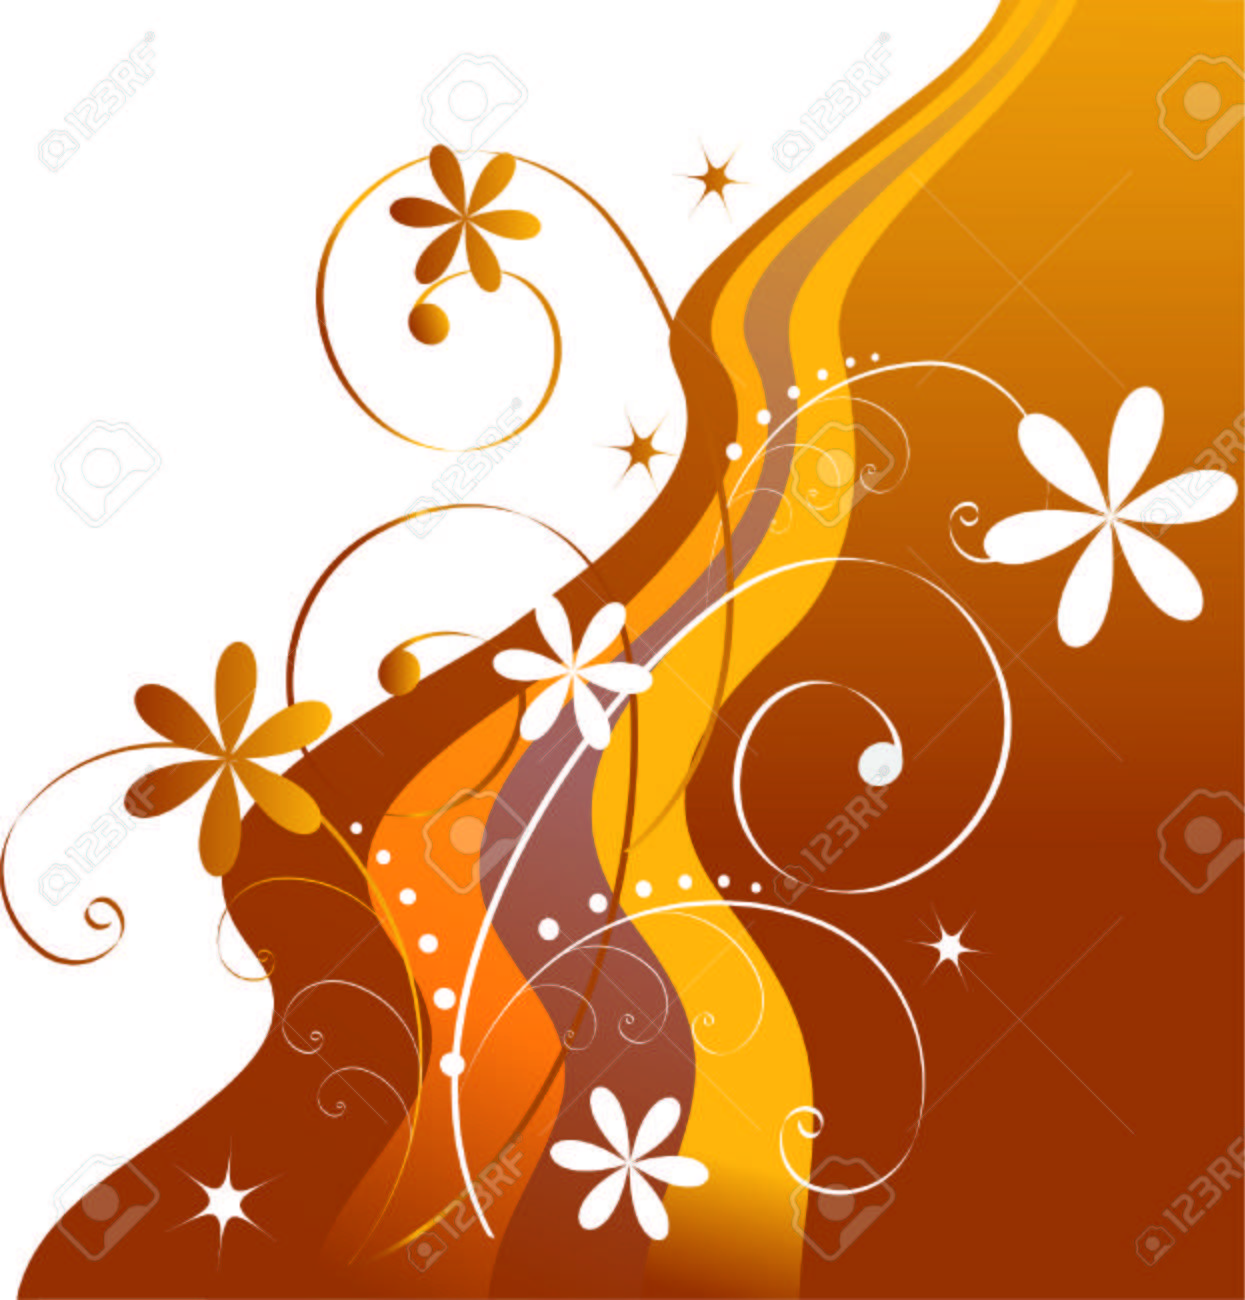 Abstract background of yellow-brown flowers and ribbons. Stock Vector - 6386611